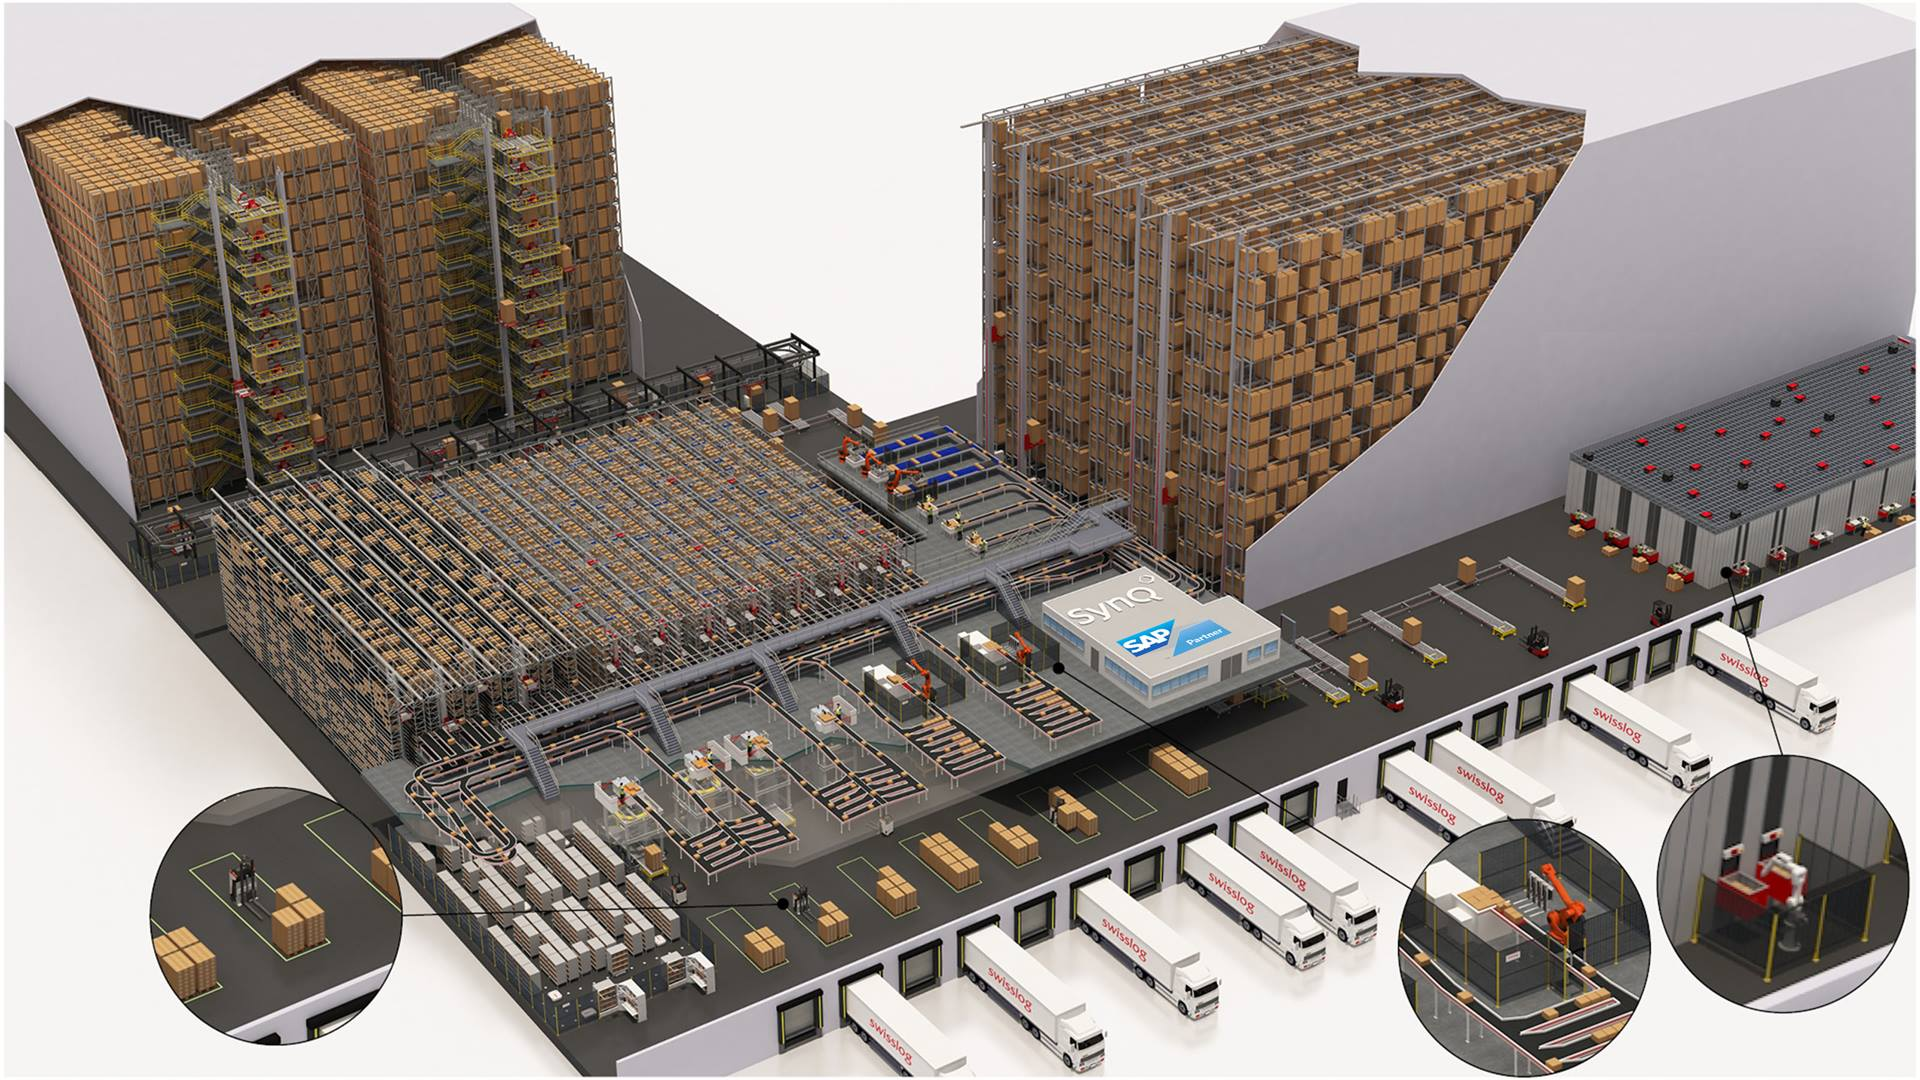 Leading systems and technologies for logistics center, warehouse and distribution center automation